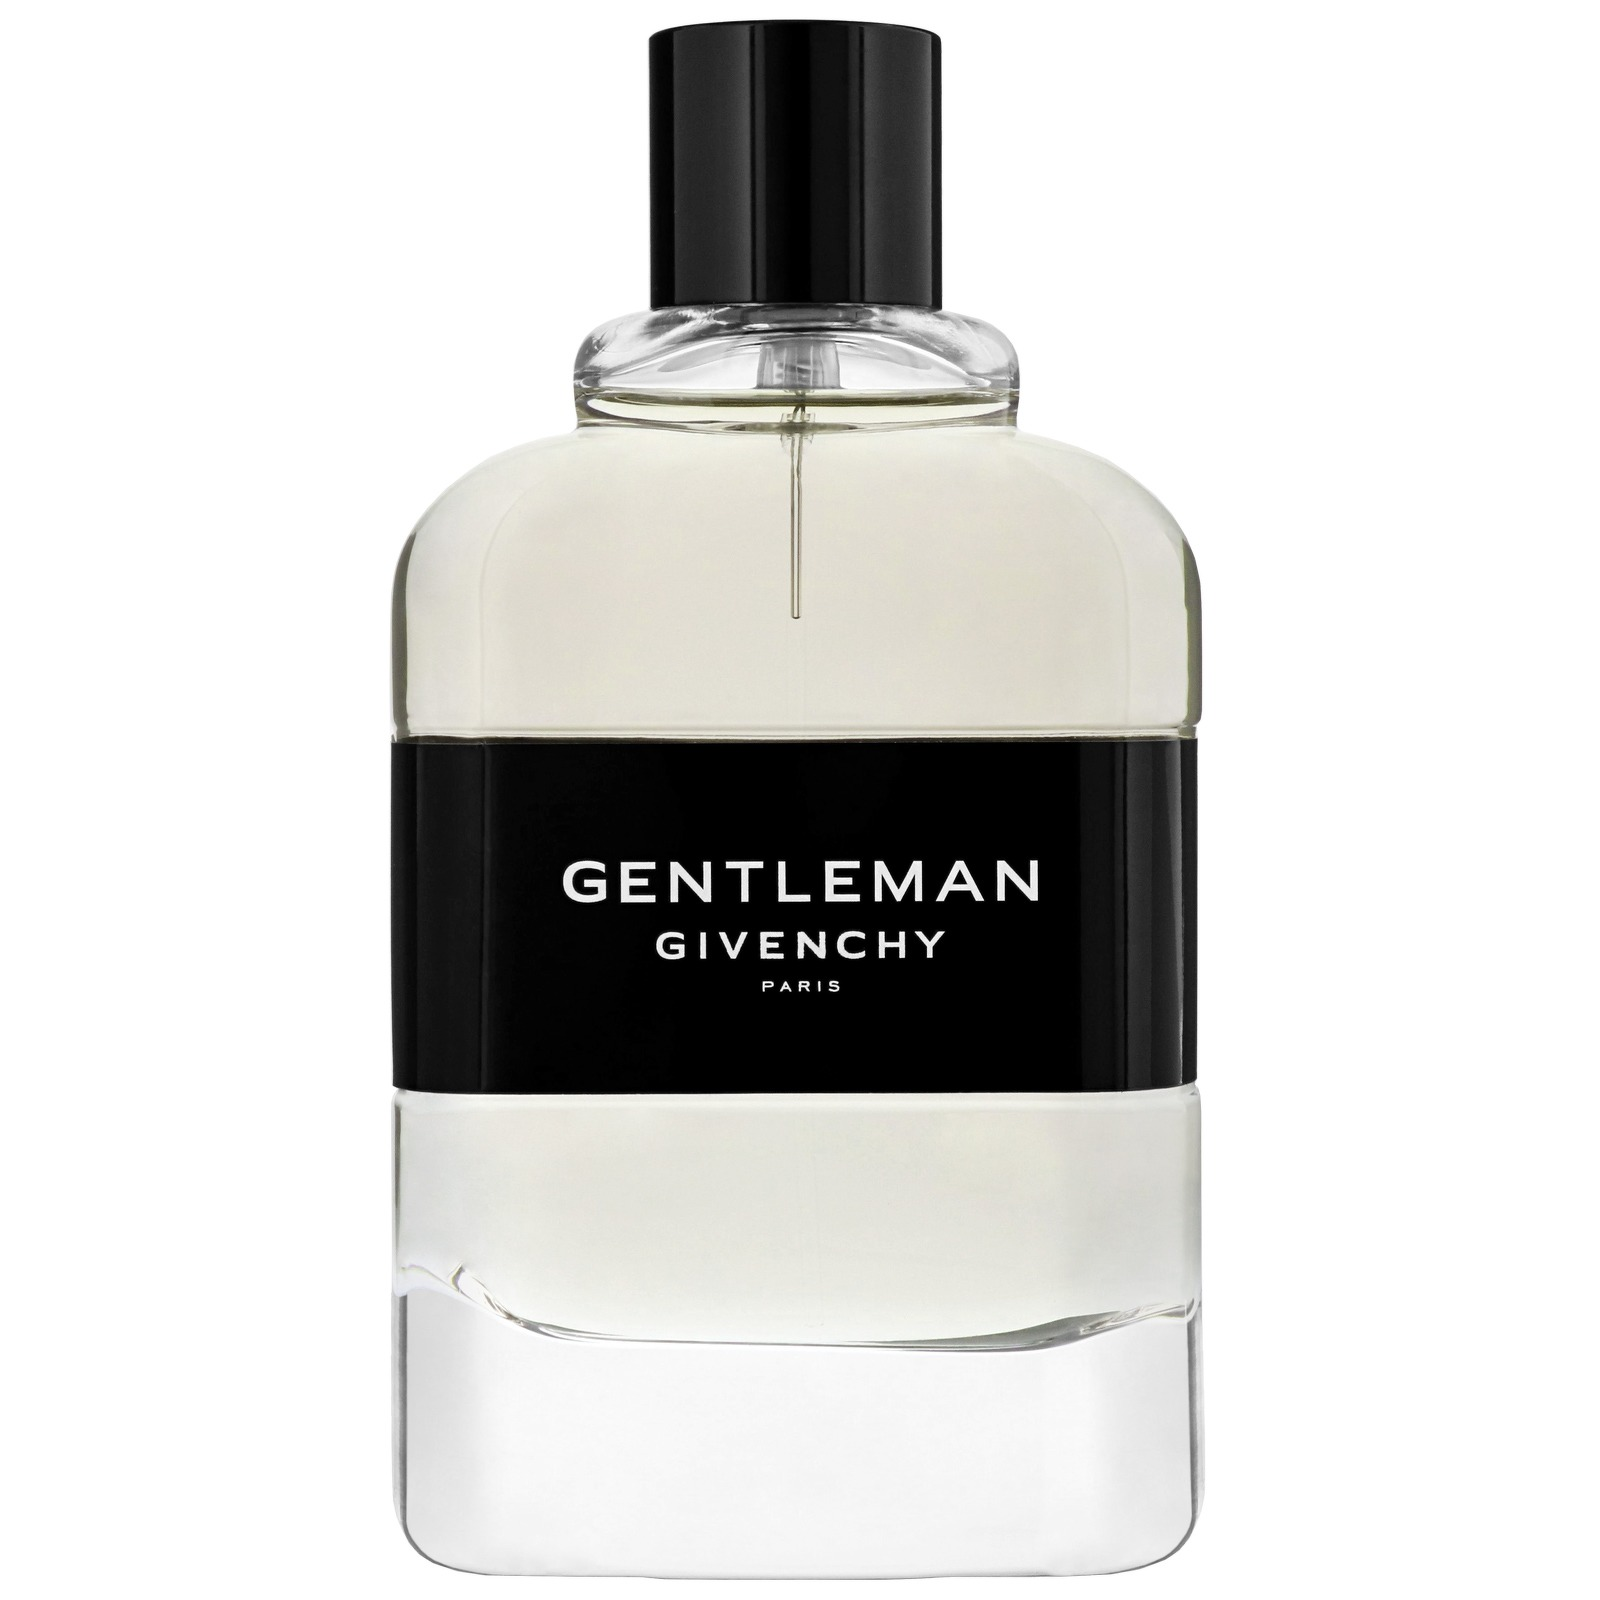 Givenchy Gentleman Eau de Toilette Spray 100ml